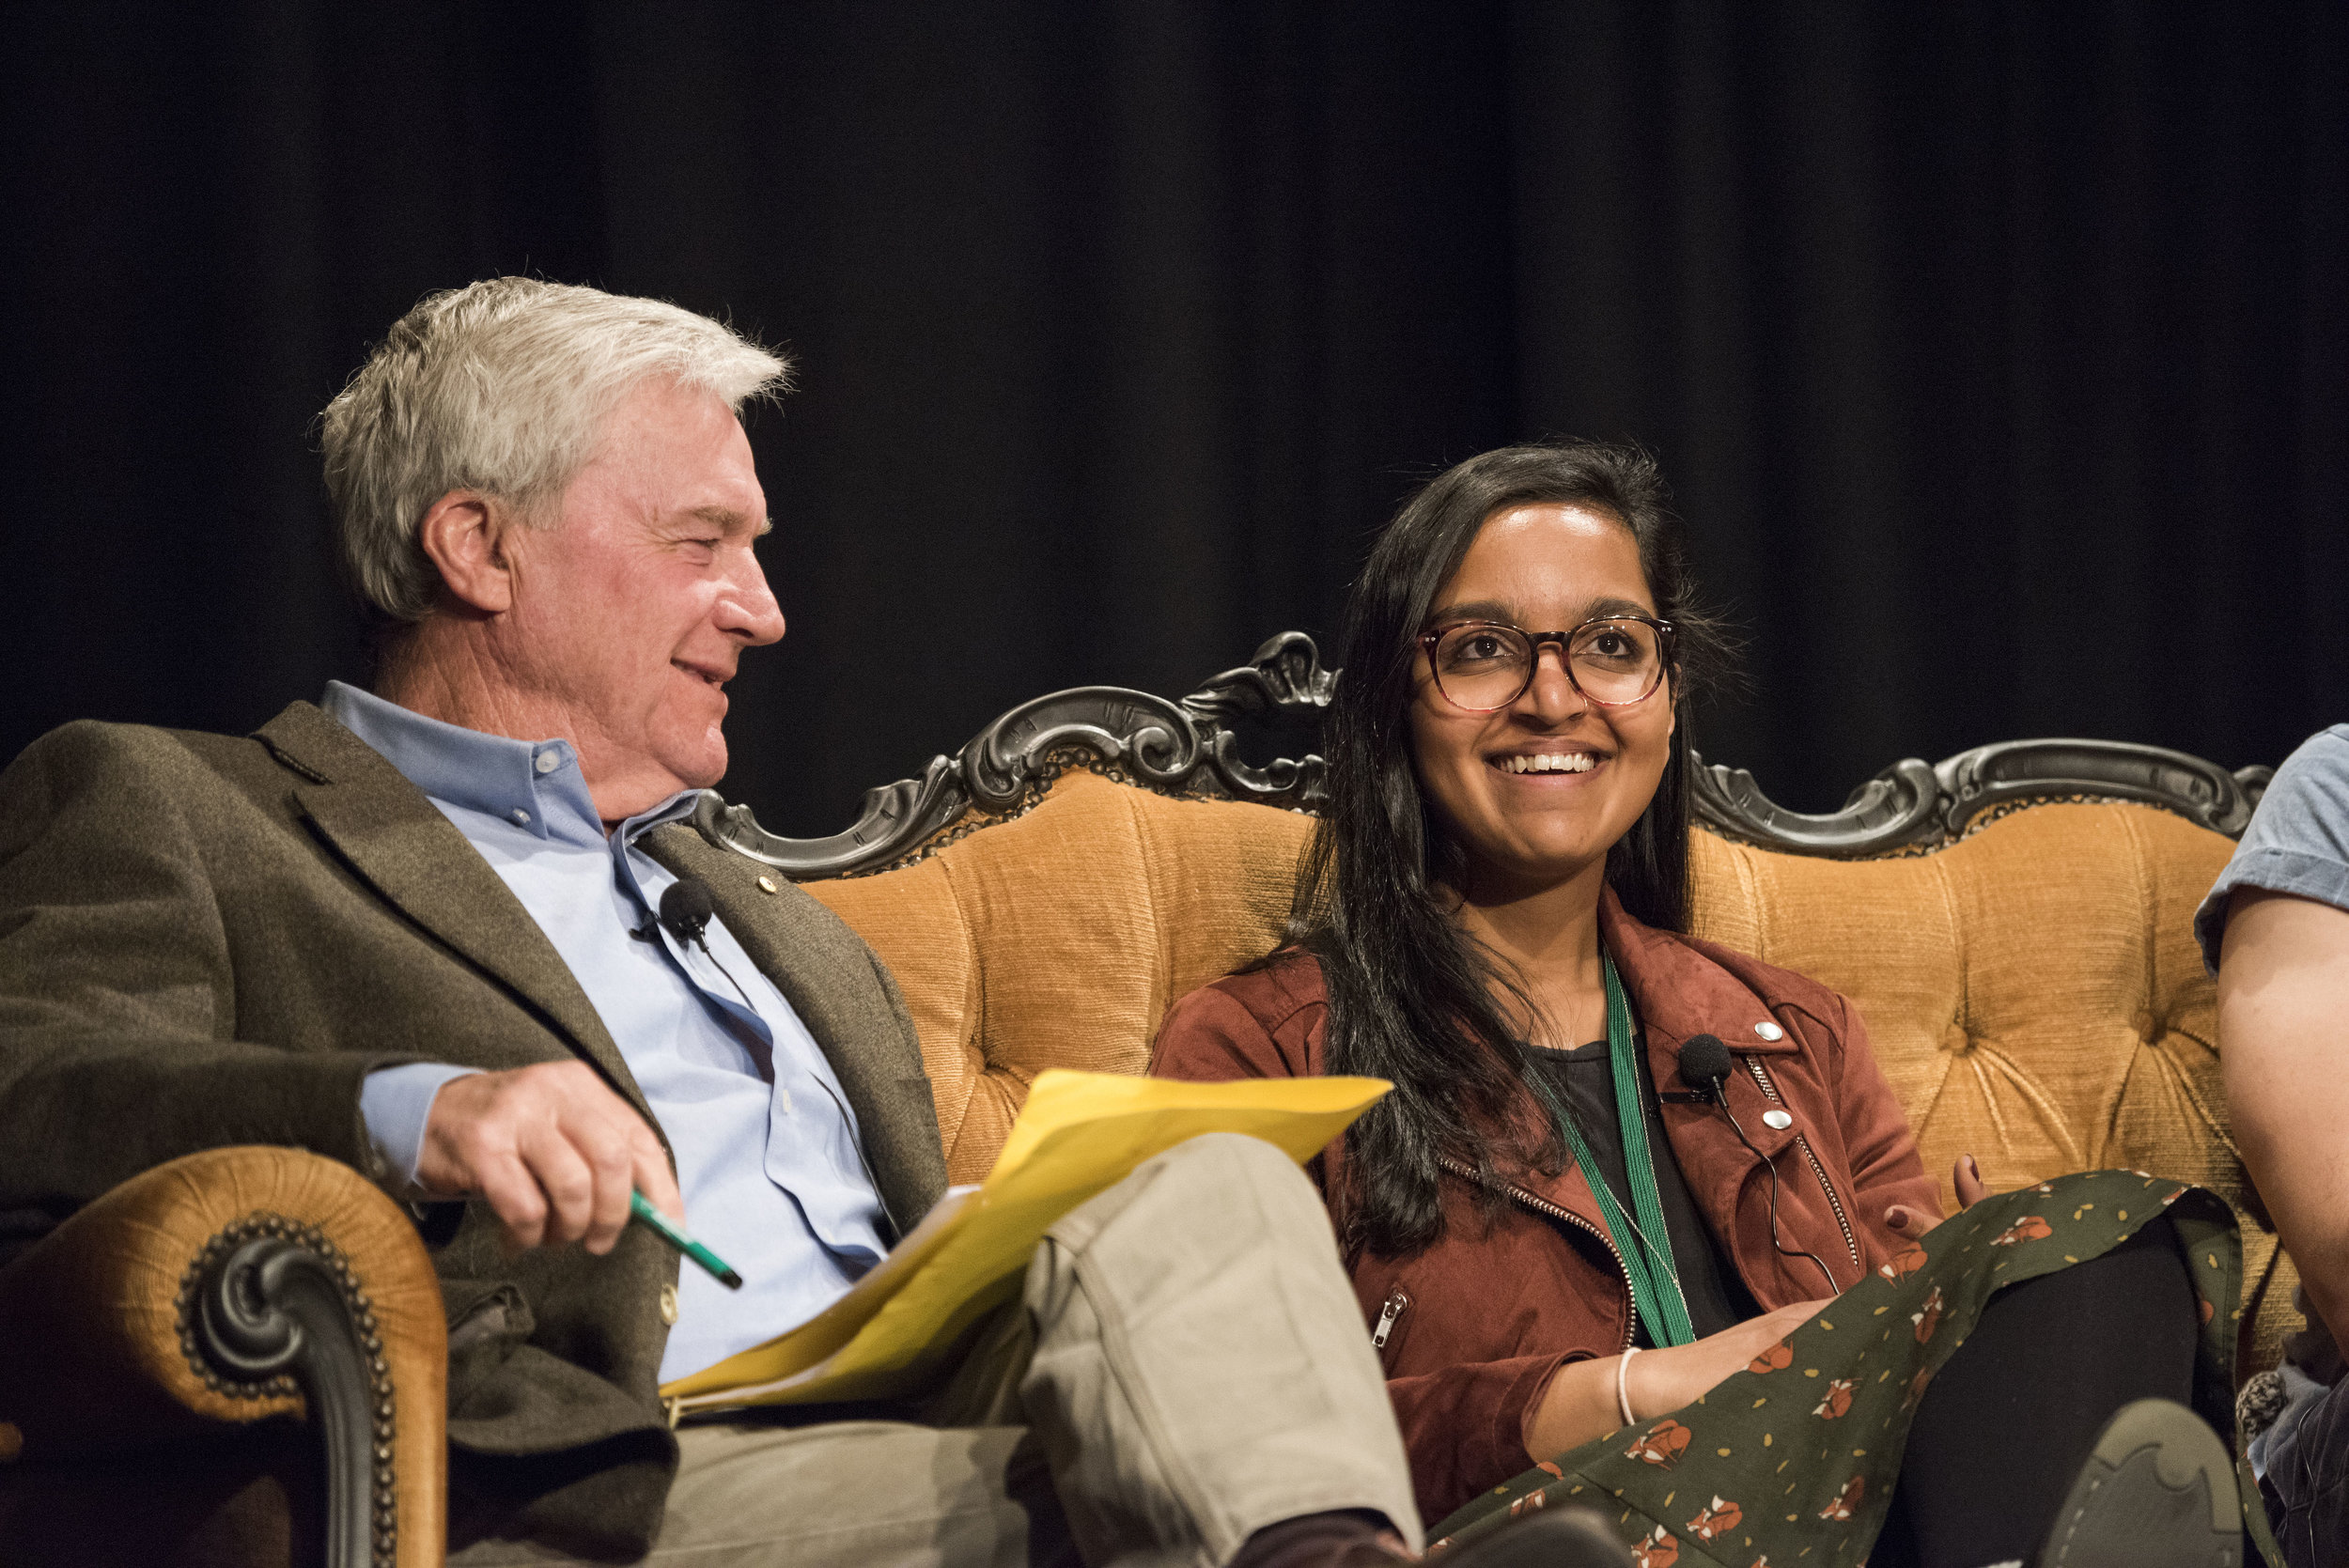 Mike Munro and Zoya Patel in Generation Me or Generation We